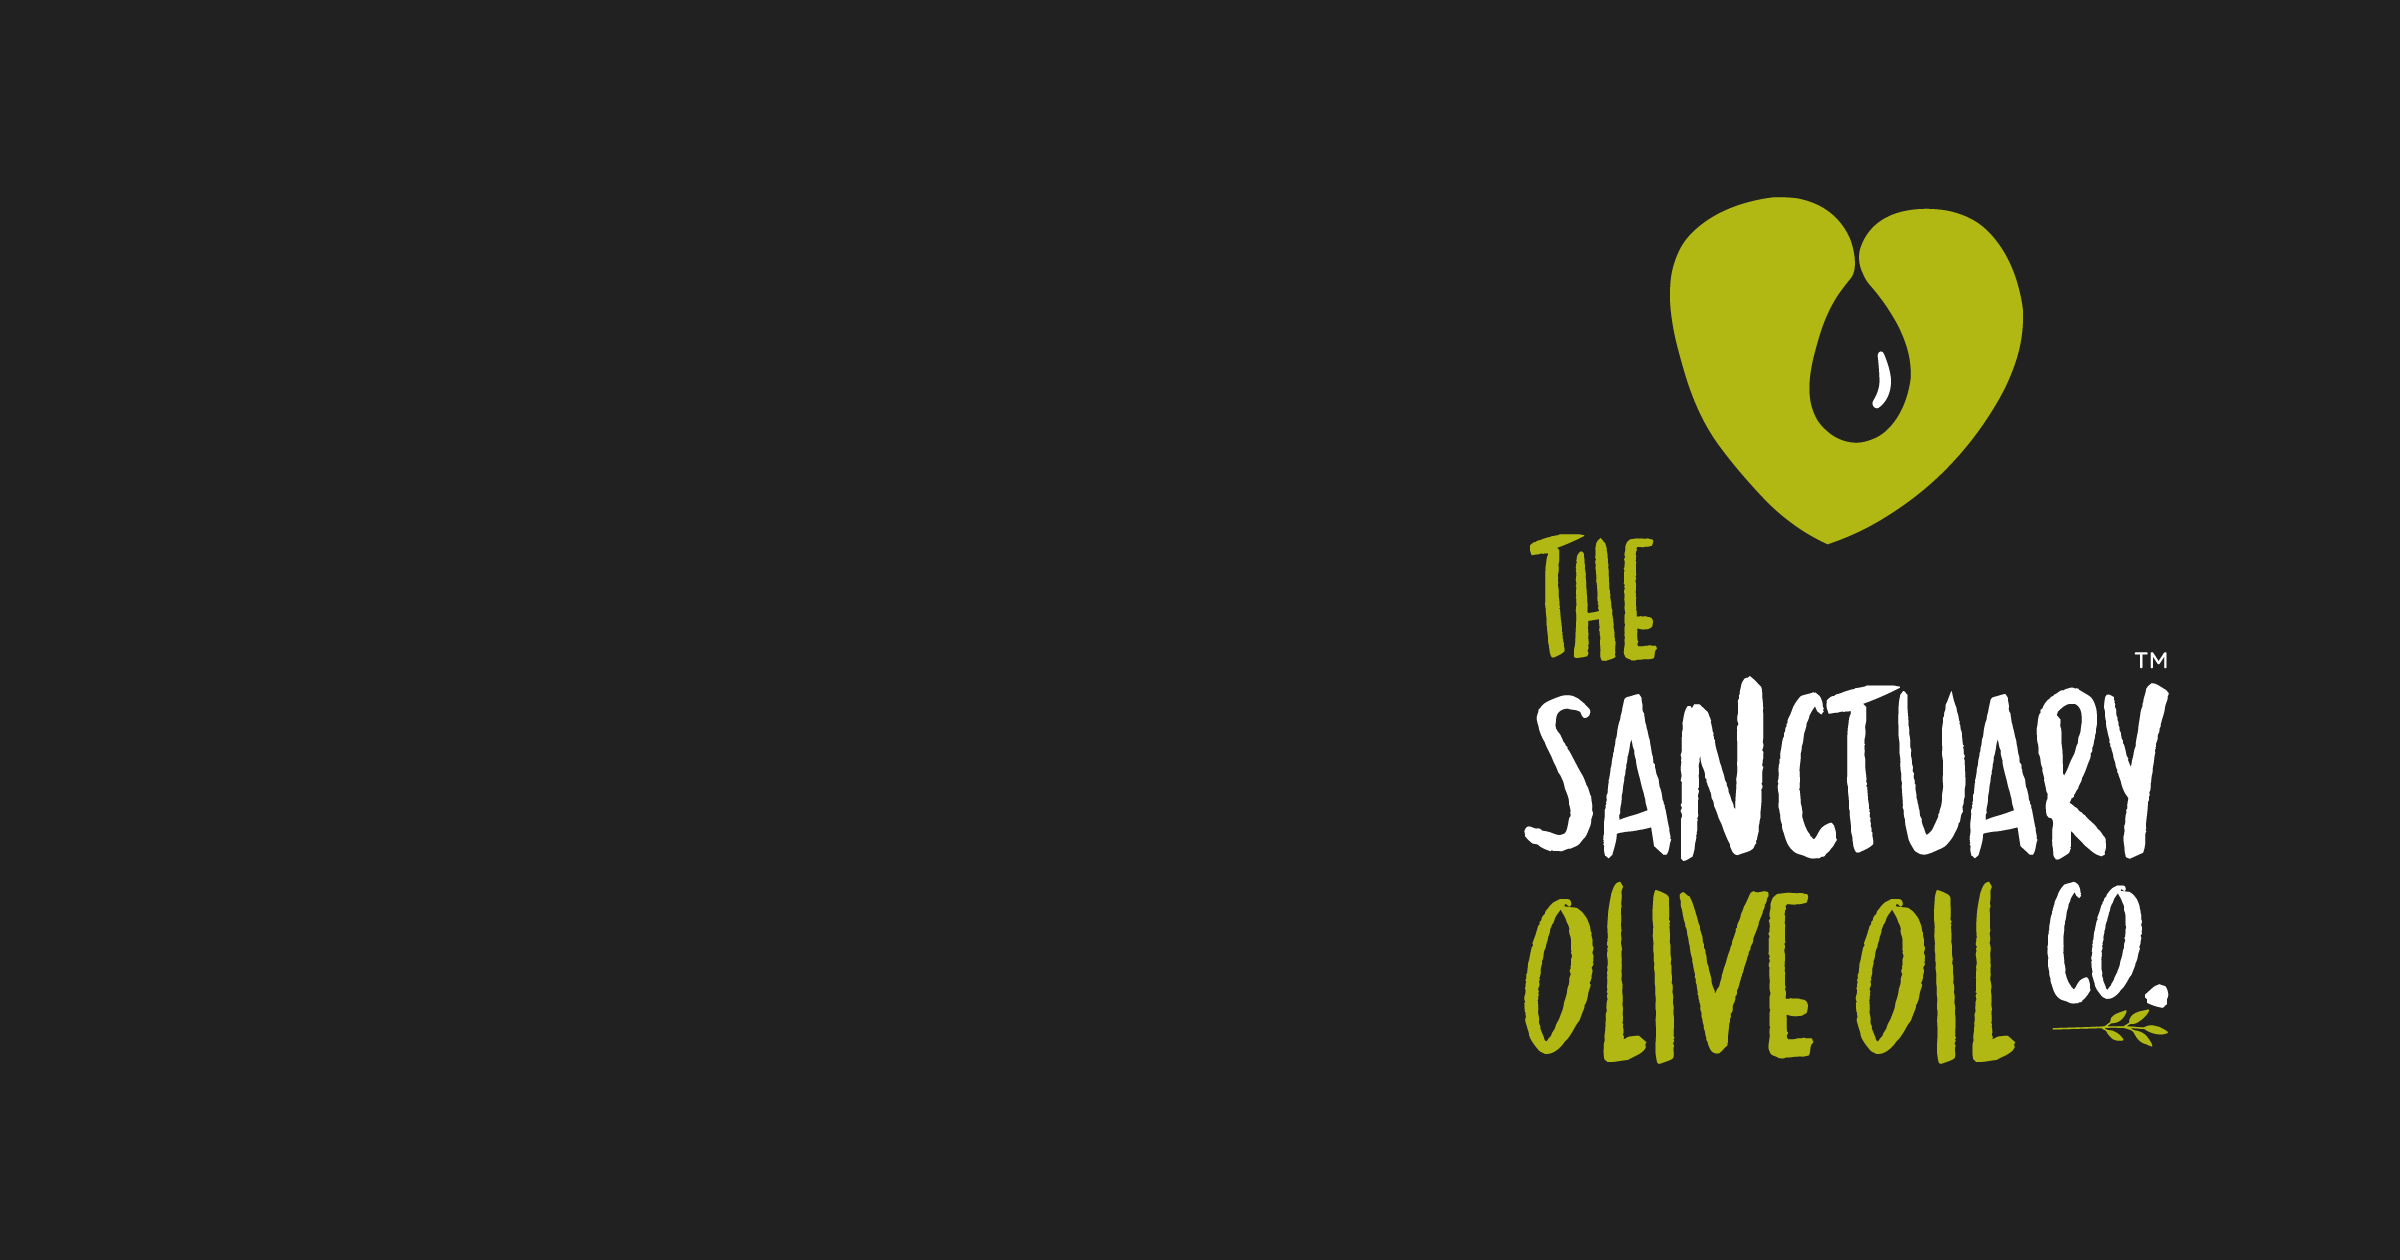 The Sanctuary Olive Oil Co. brand